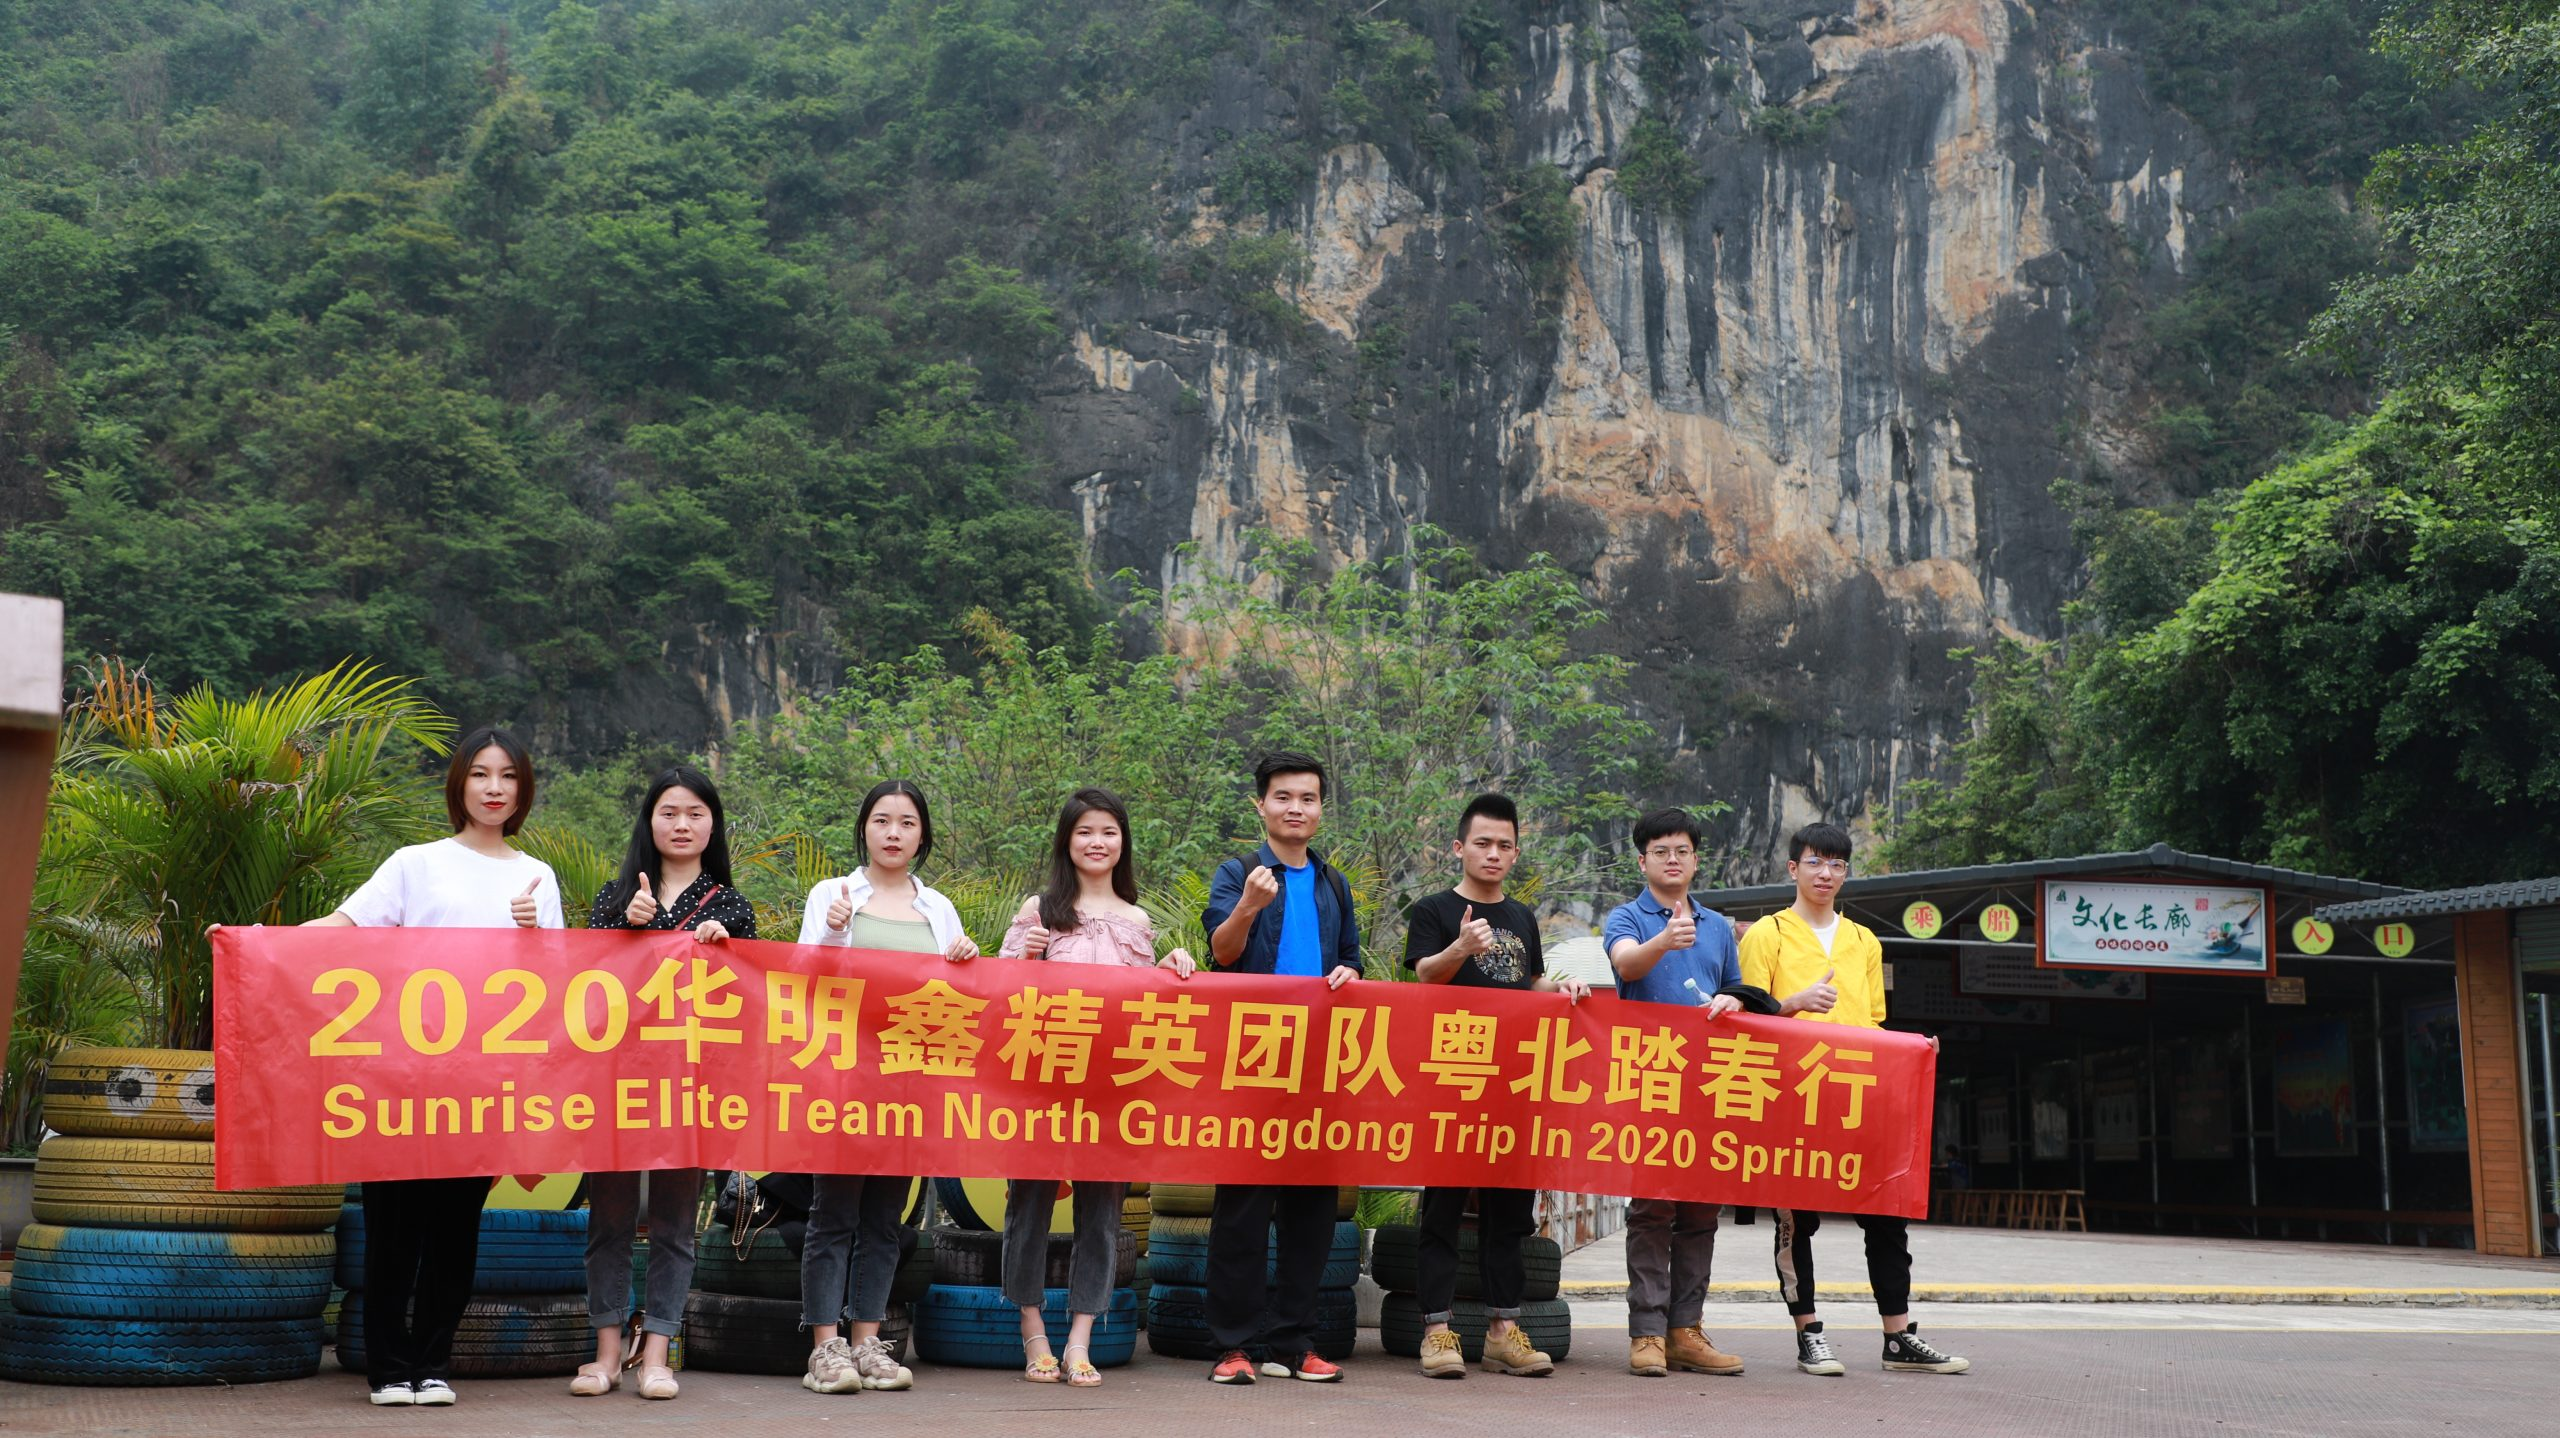 Sunrise Elite Team North Guangdong Trip in 2020 Spring